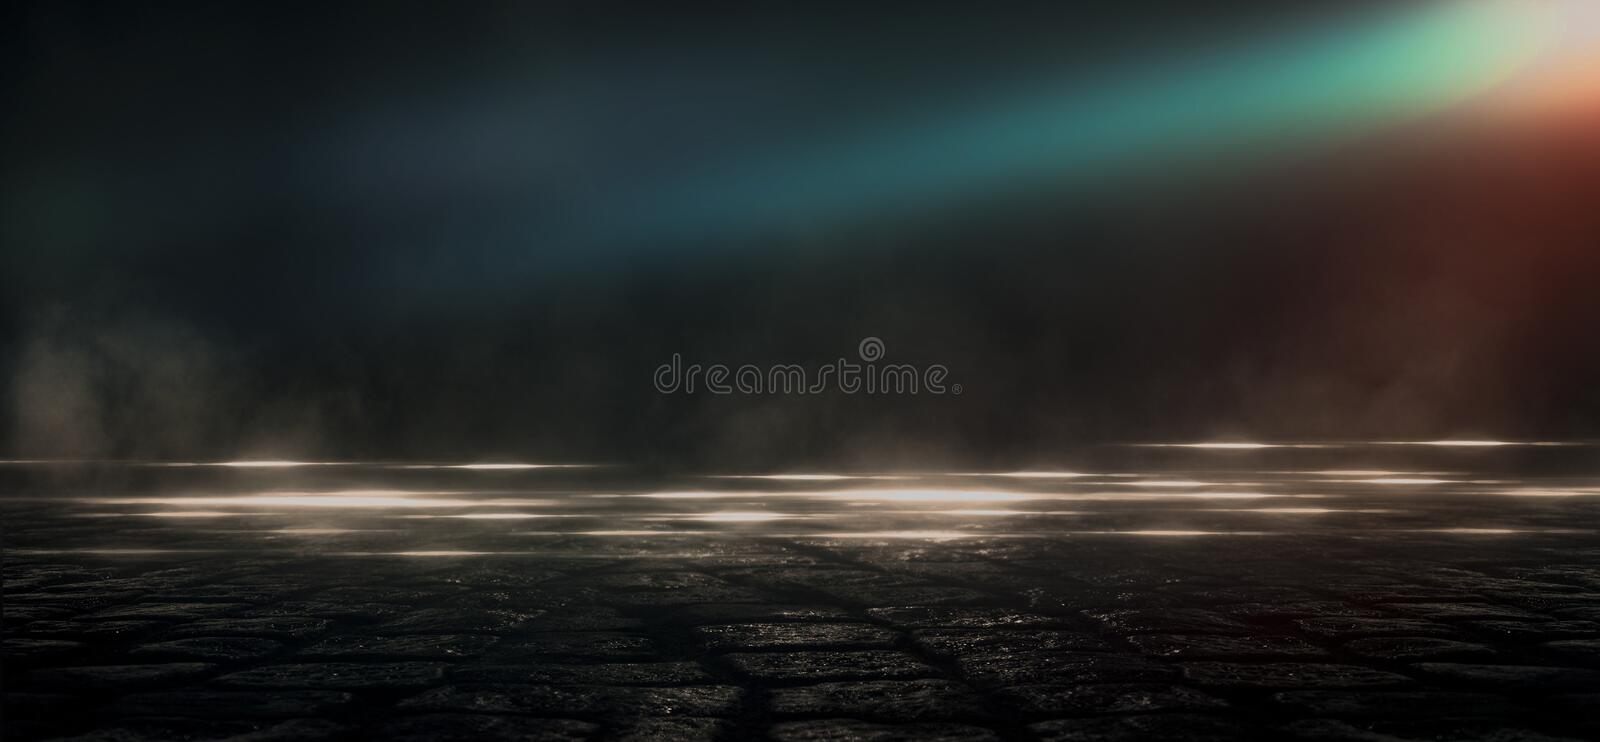 Wet asphalt, reflection of neon lights, a searchlight, smoke. Abstract light in a dark empty street with smoke, smog. Dark background scene of empty street stock illustration